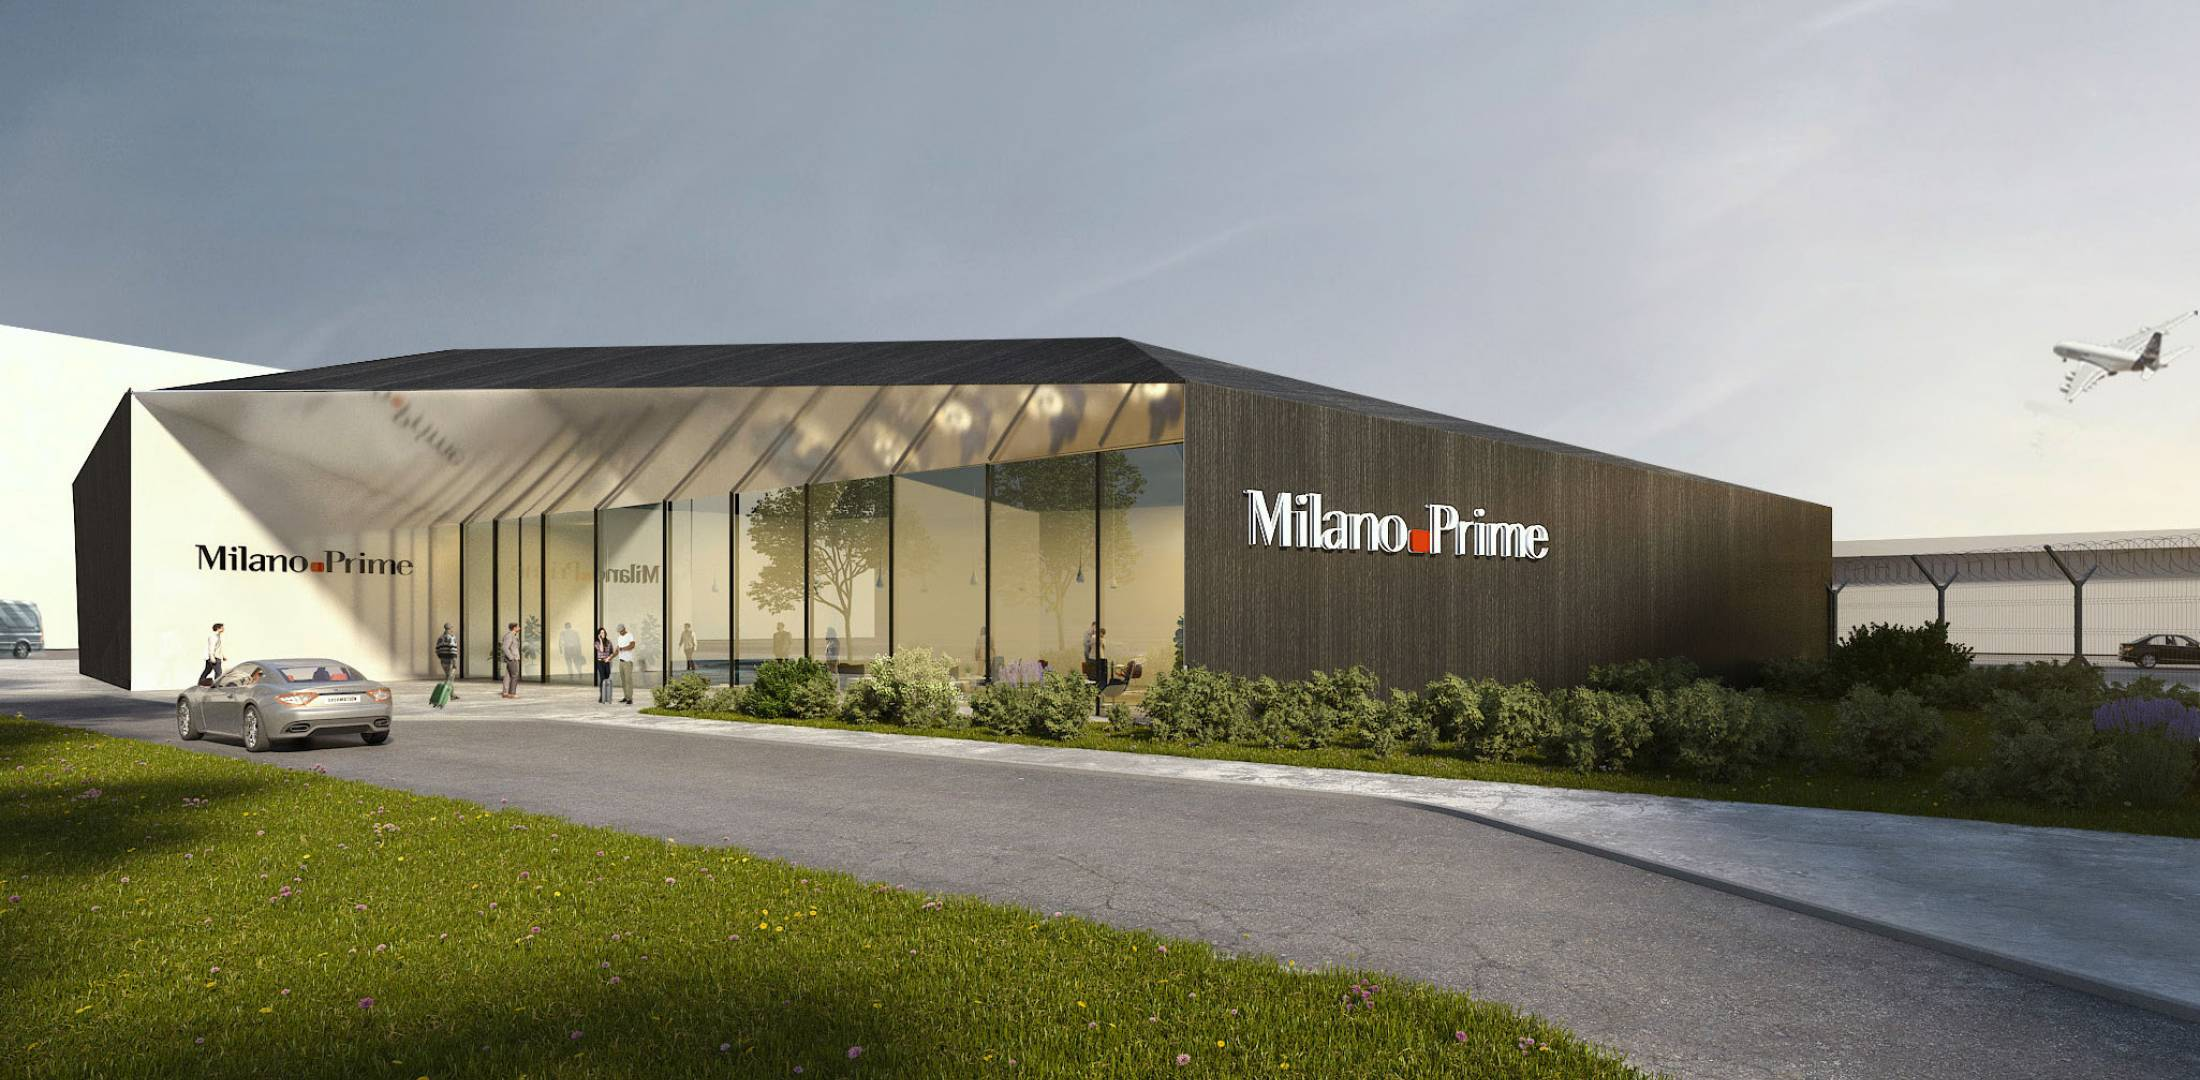 Milan's Malpensa Airport is scheduled to open its first business aviation-specific facility in June, to be operated by SEA Prime S.p.A.